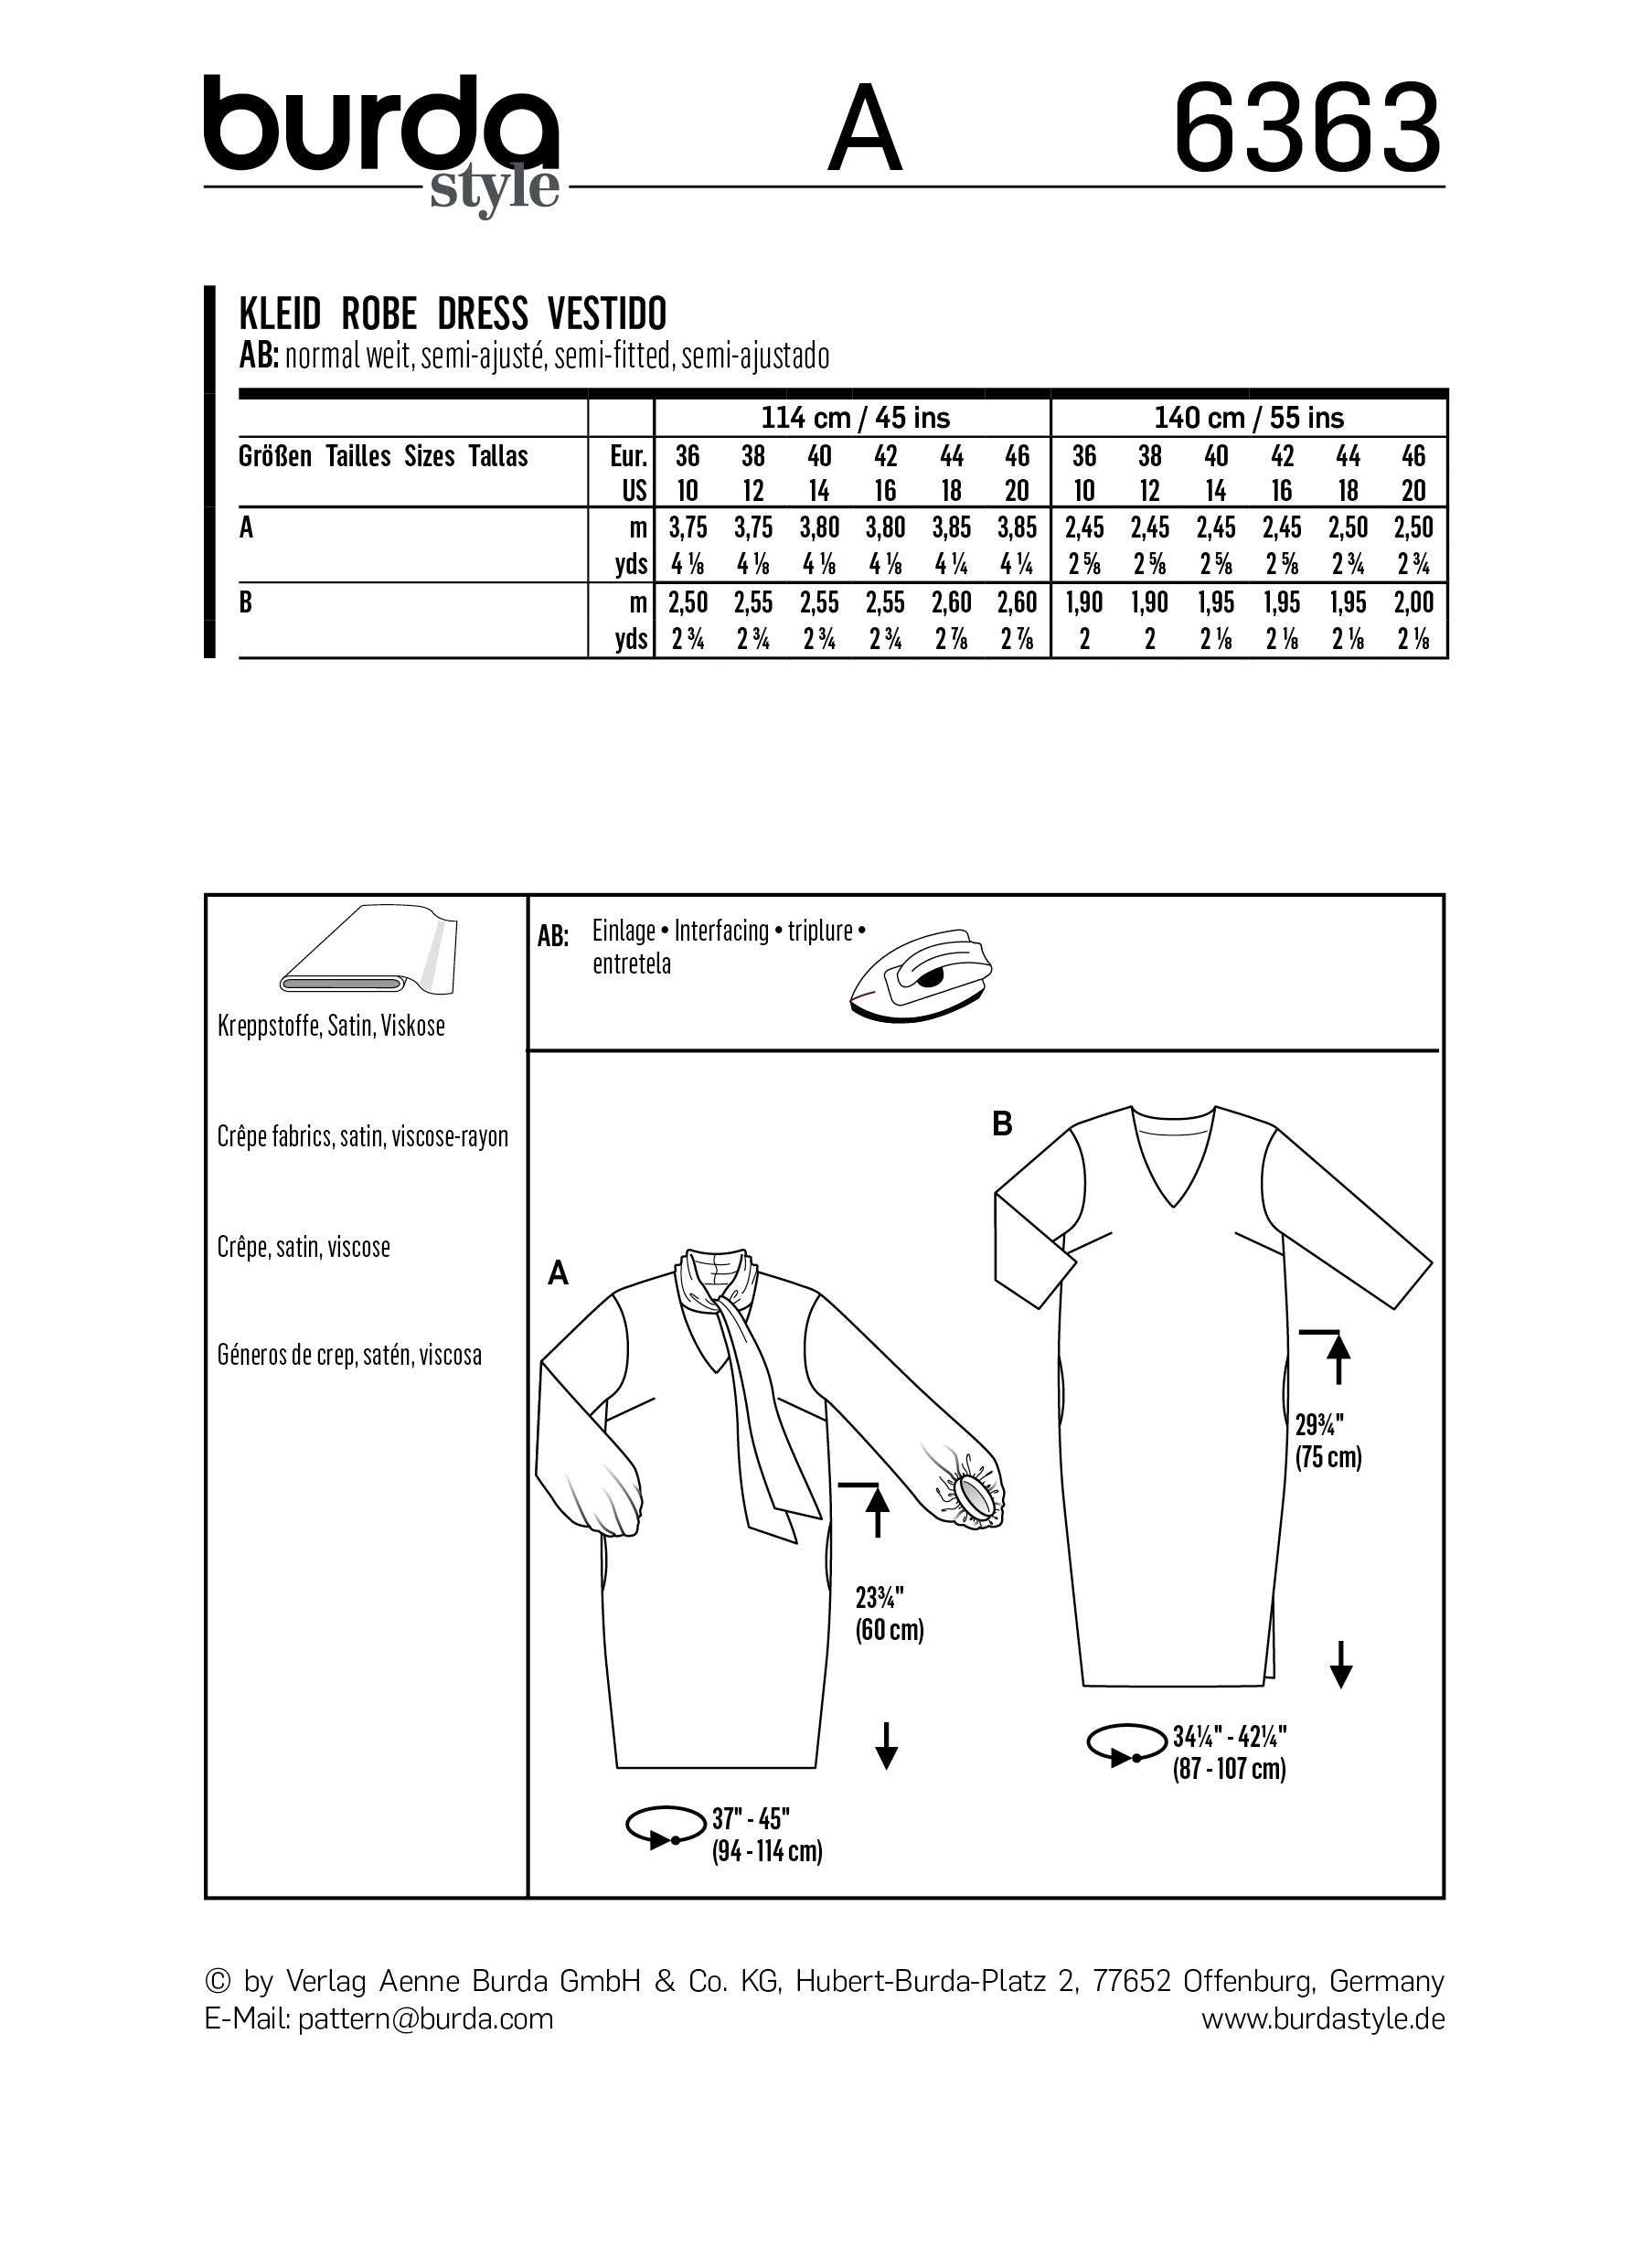 BD6363 Women's Dress pattern